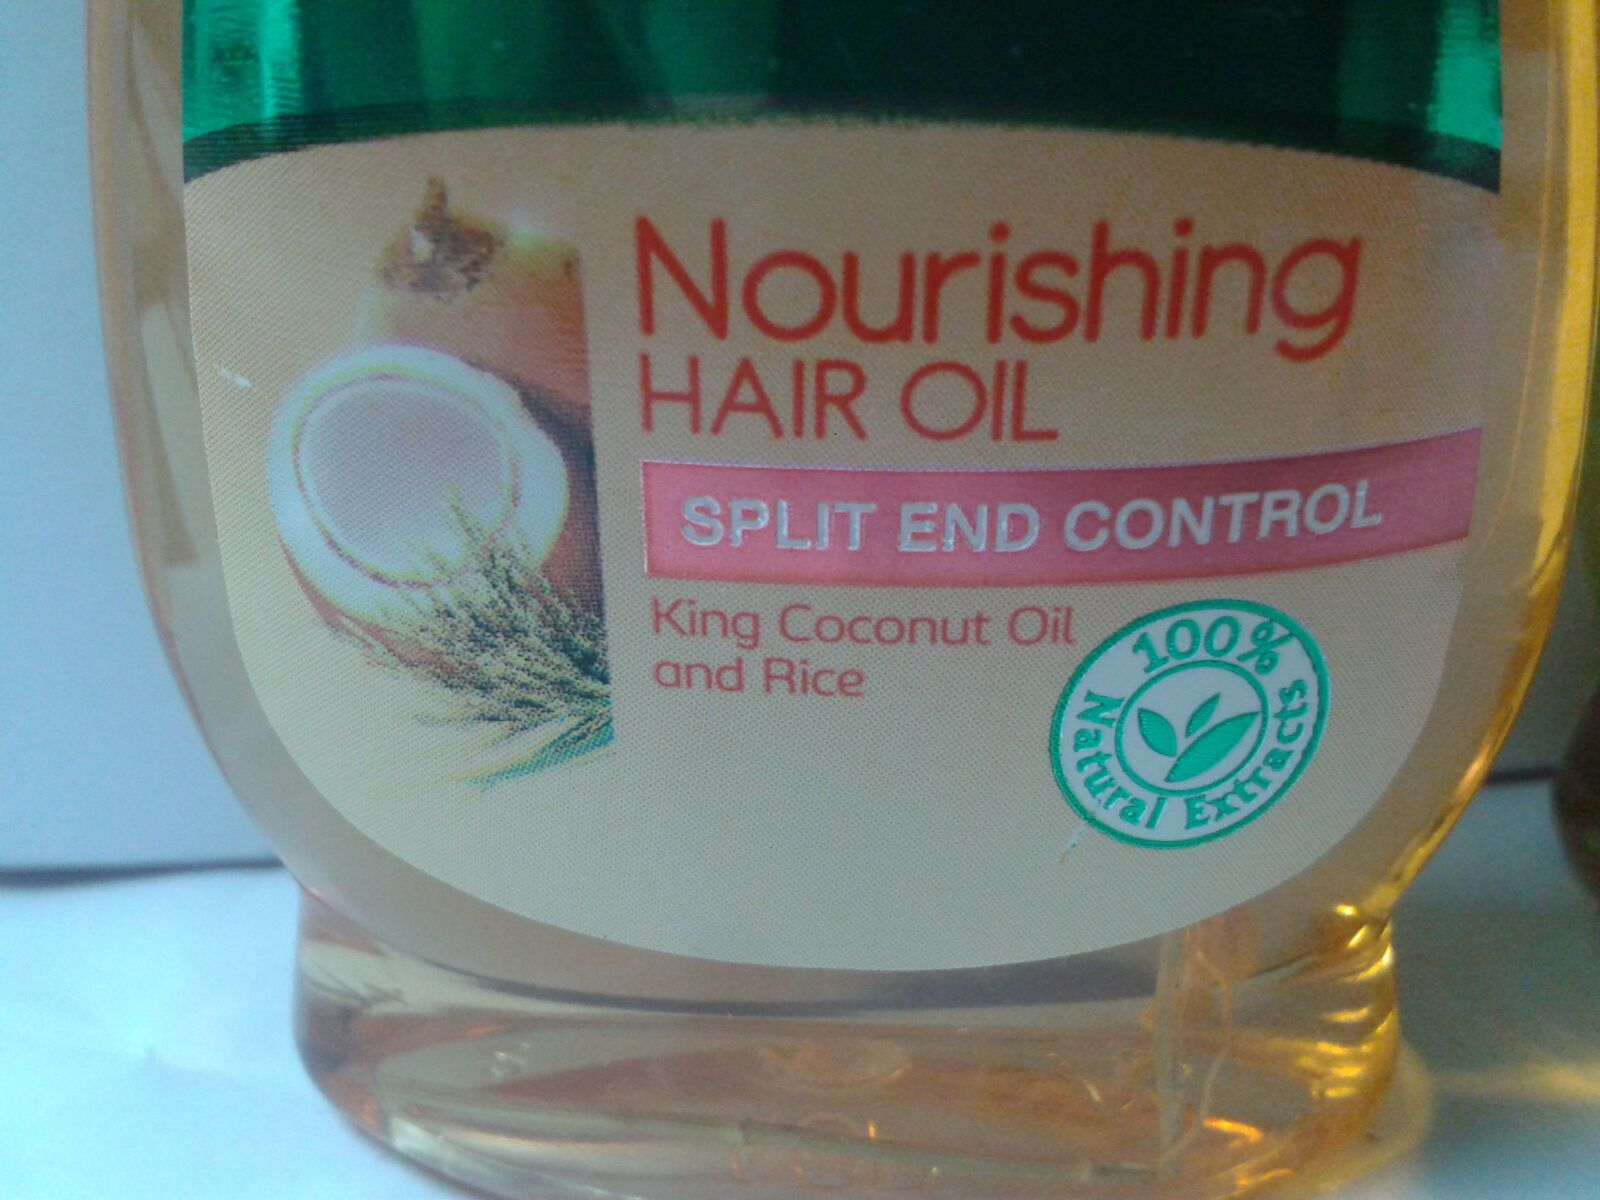 KUMARIKA NOURISHING HAIR OIL SPLIT END CONTROL